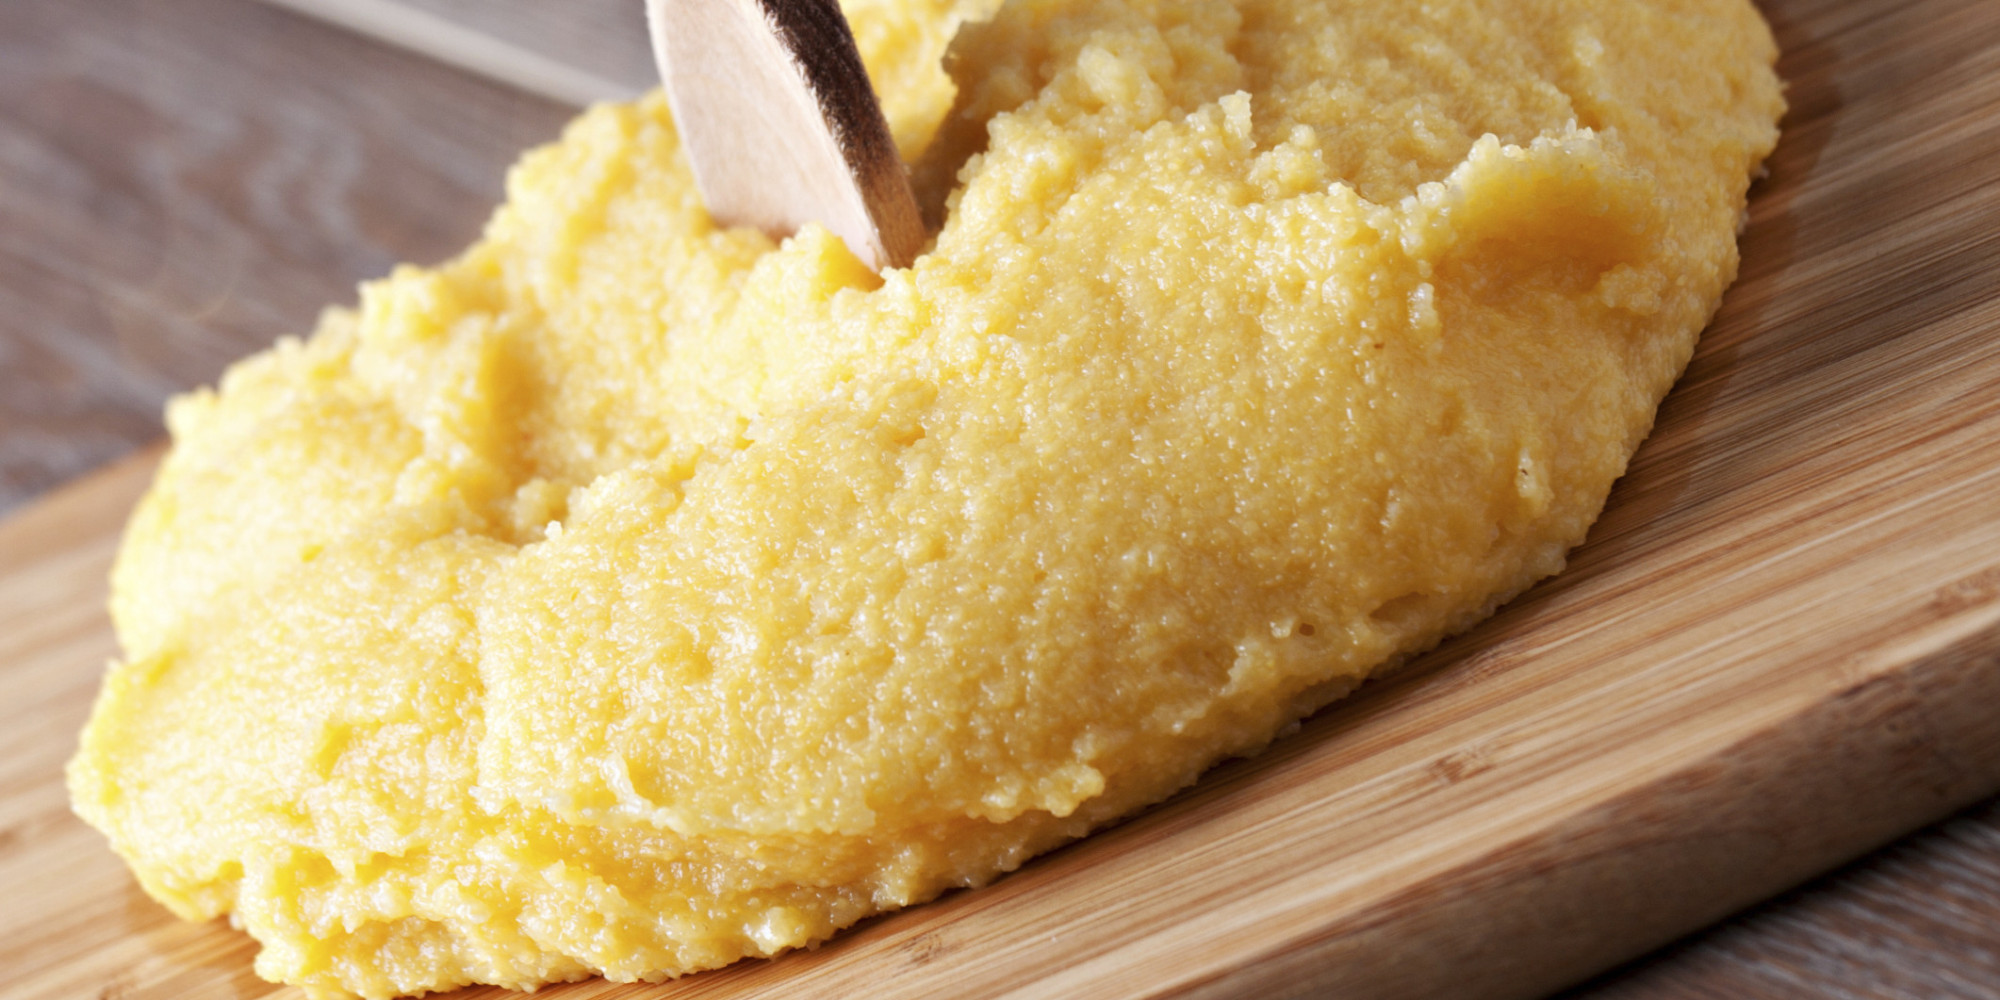 So What Exactly IS Polenta, Anyway? | HuffPost